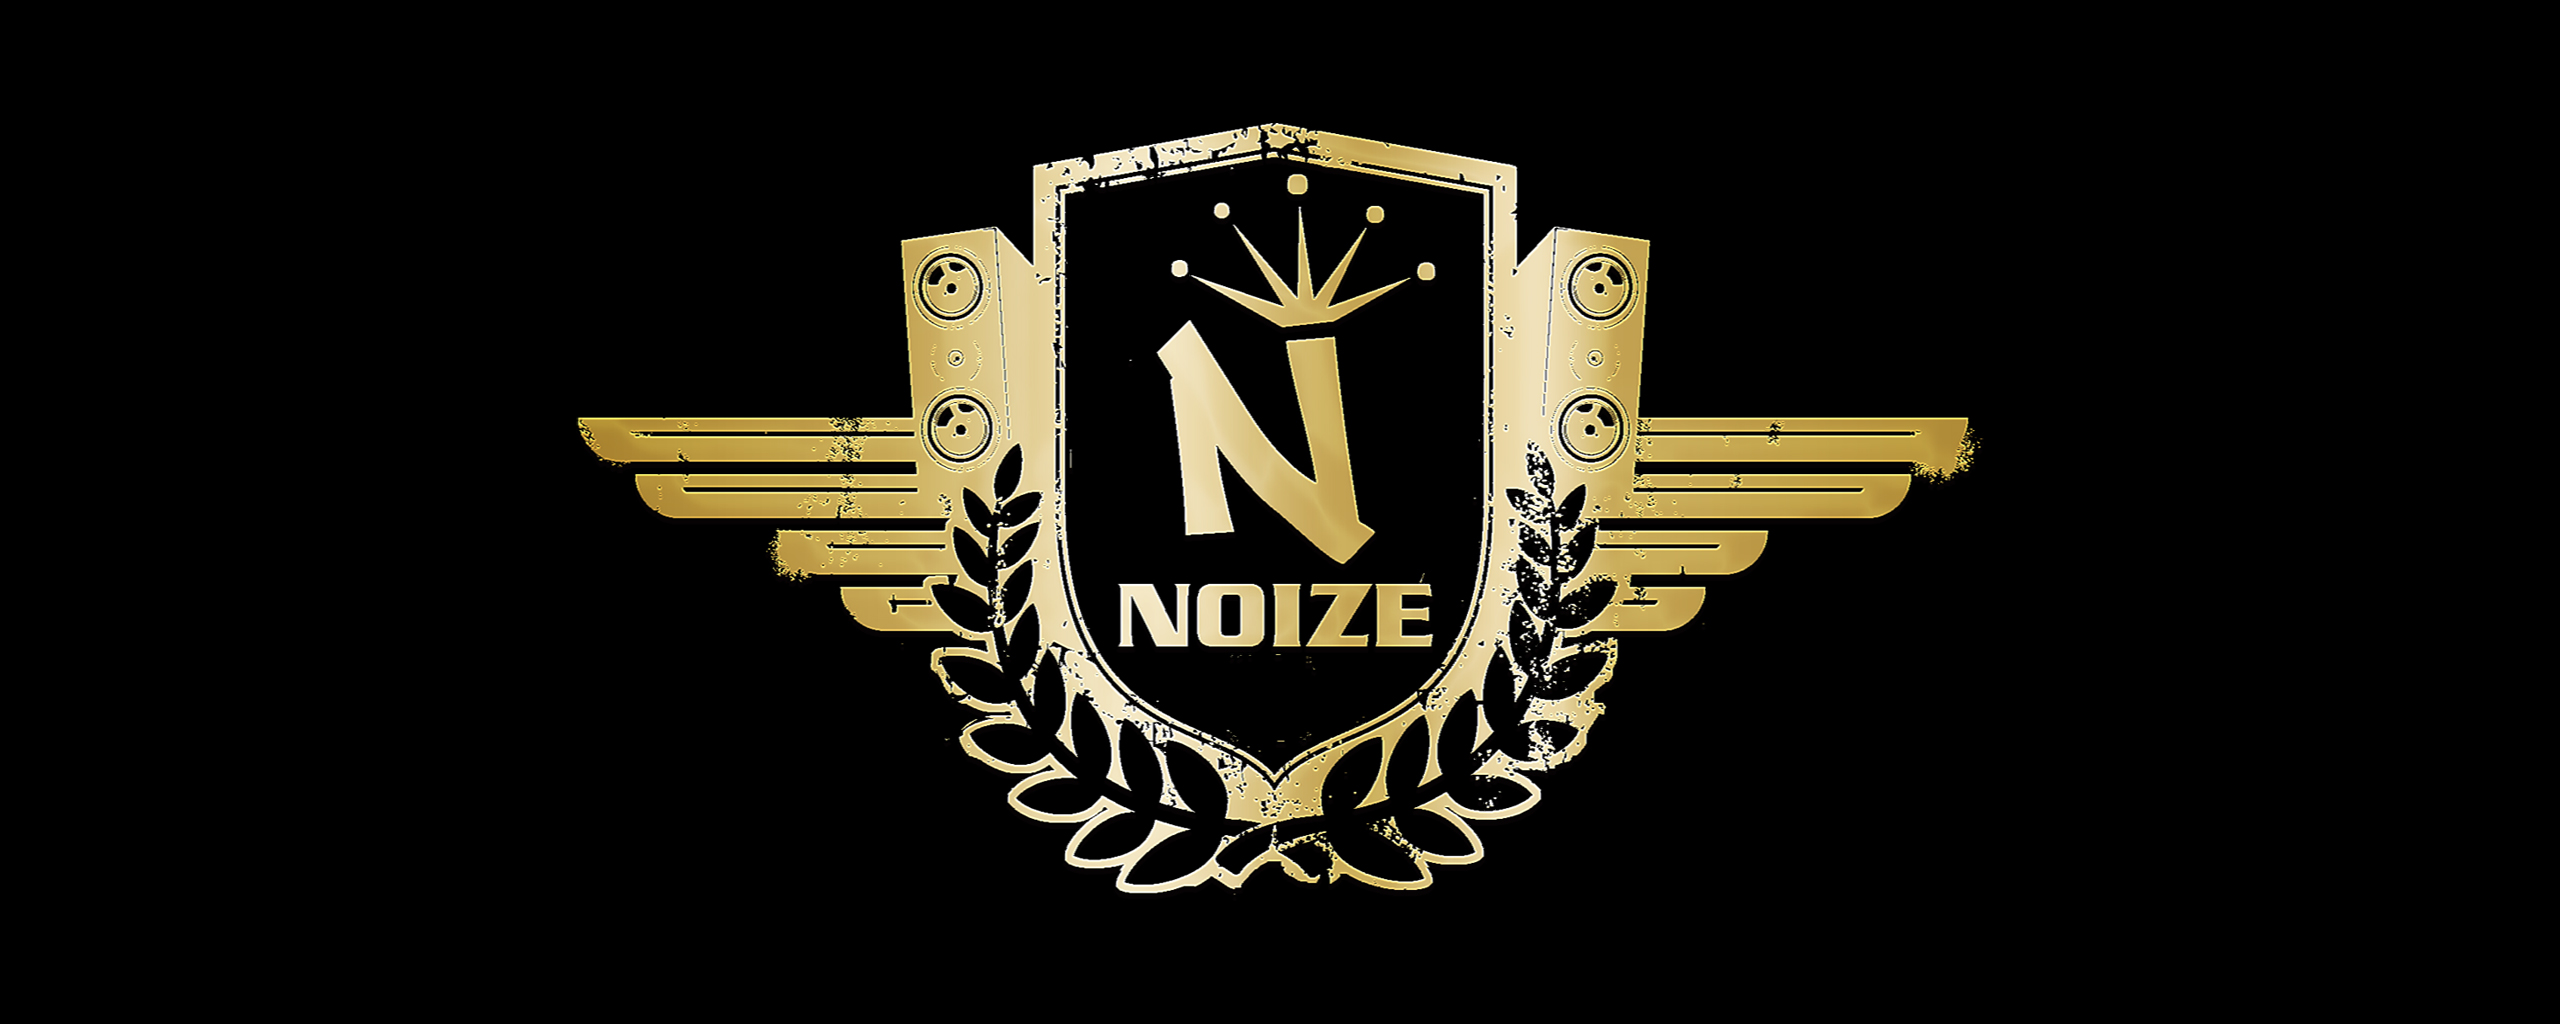 noize-logo-black-back-2